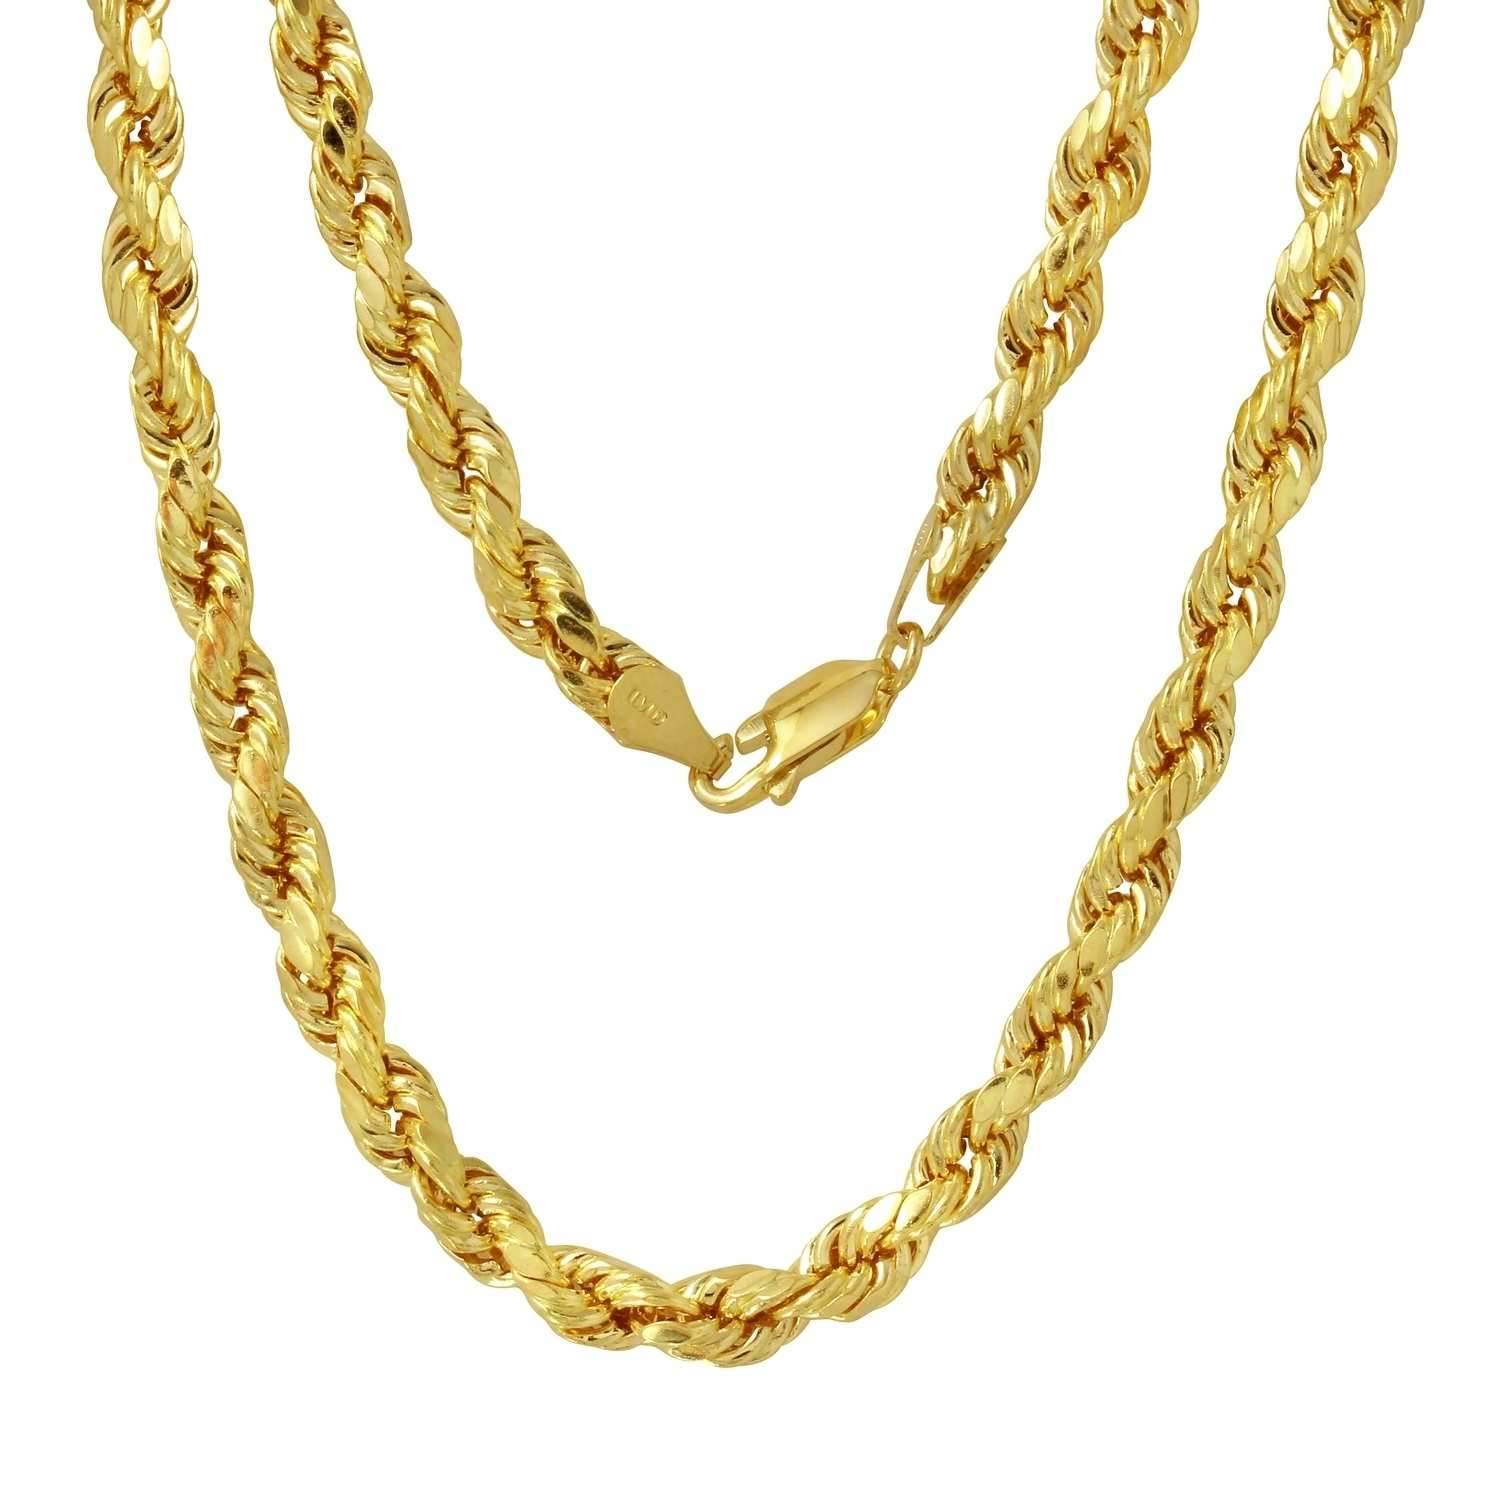 14K Gold 5MM Thick Diamond Cut Rope Chain Necklace Unisex Sizes 18''-30'' (22.0)